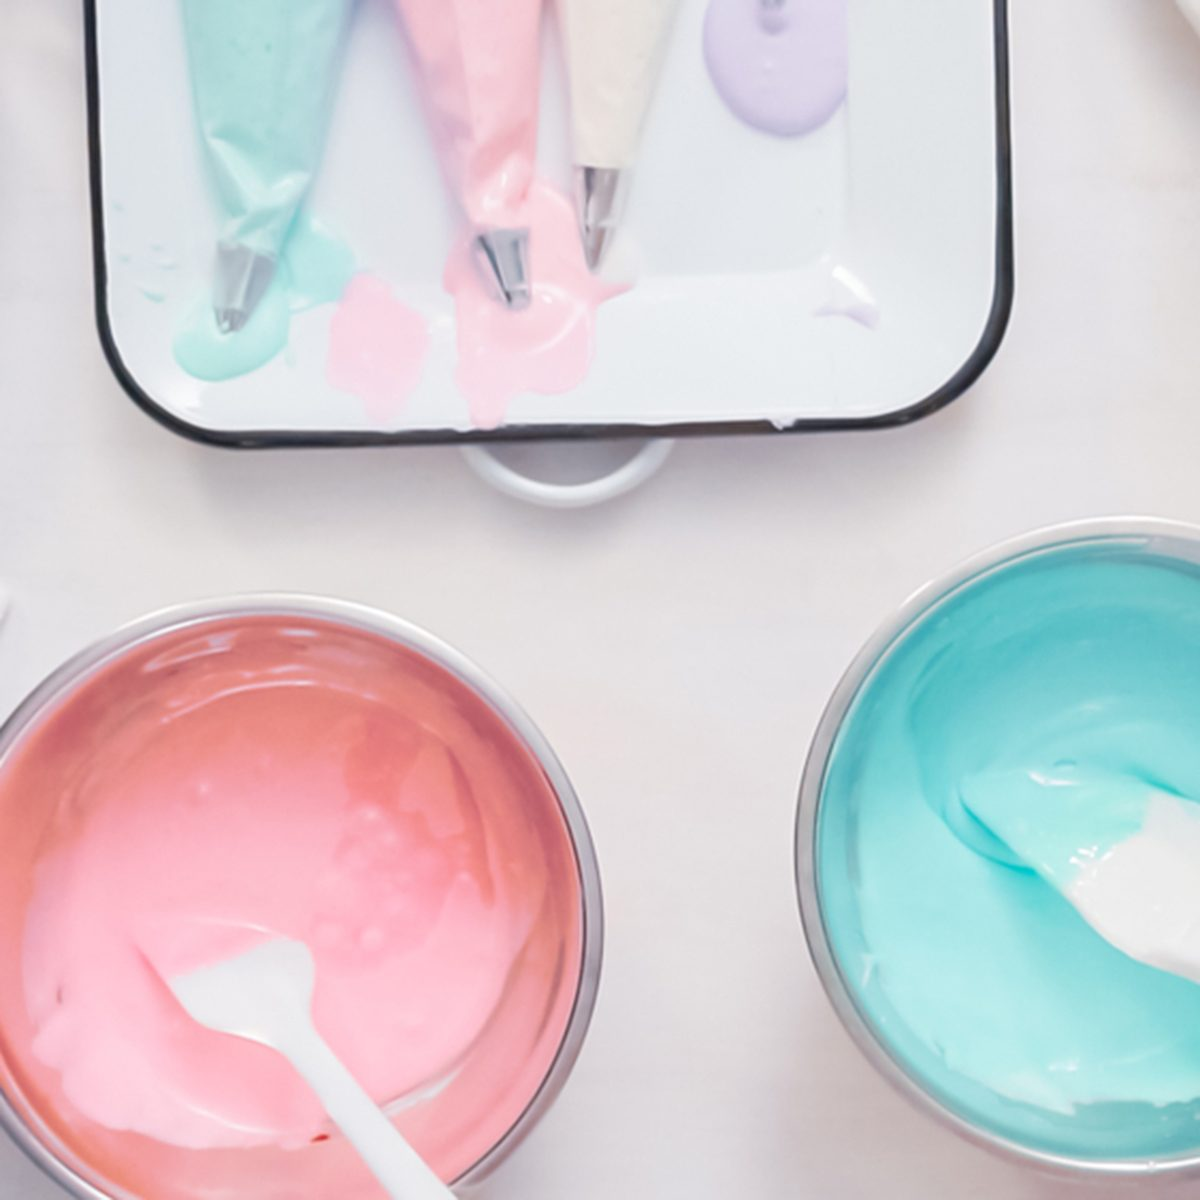 Mixing food coloring into royal icing to decorate unicorn sugar cookies.